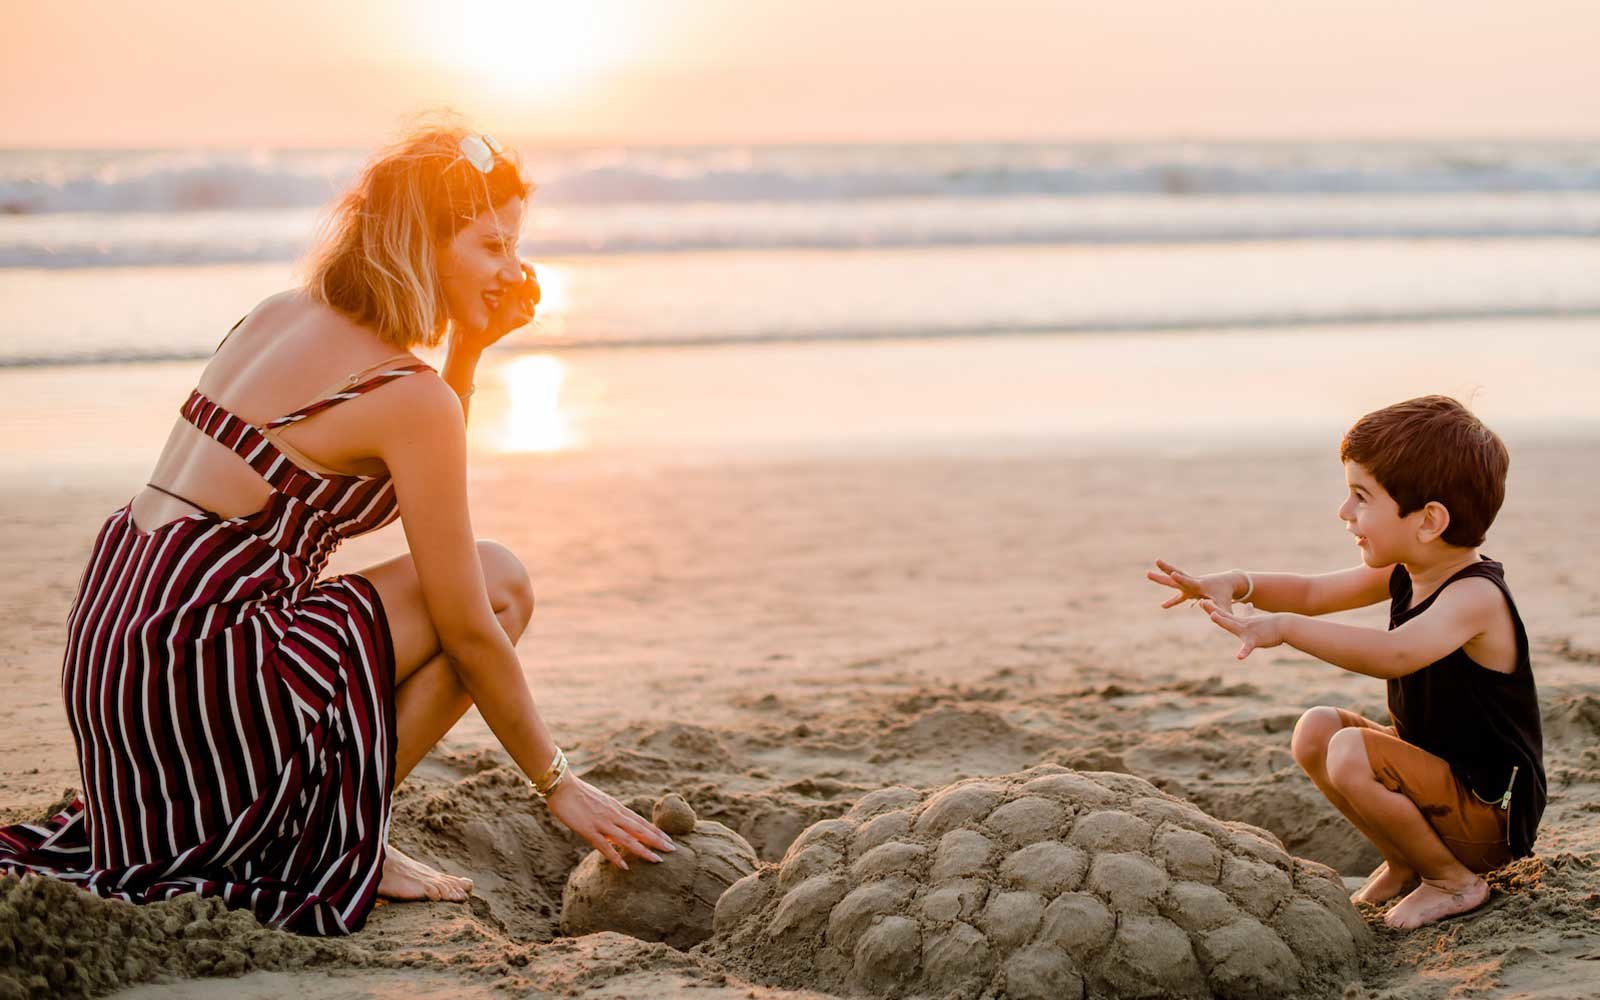 beach city single parent dating site Single parent dating site - if you are looking for relationships, we offer you to become a member of our dating site all the members of this site are looking for .